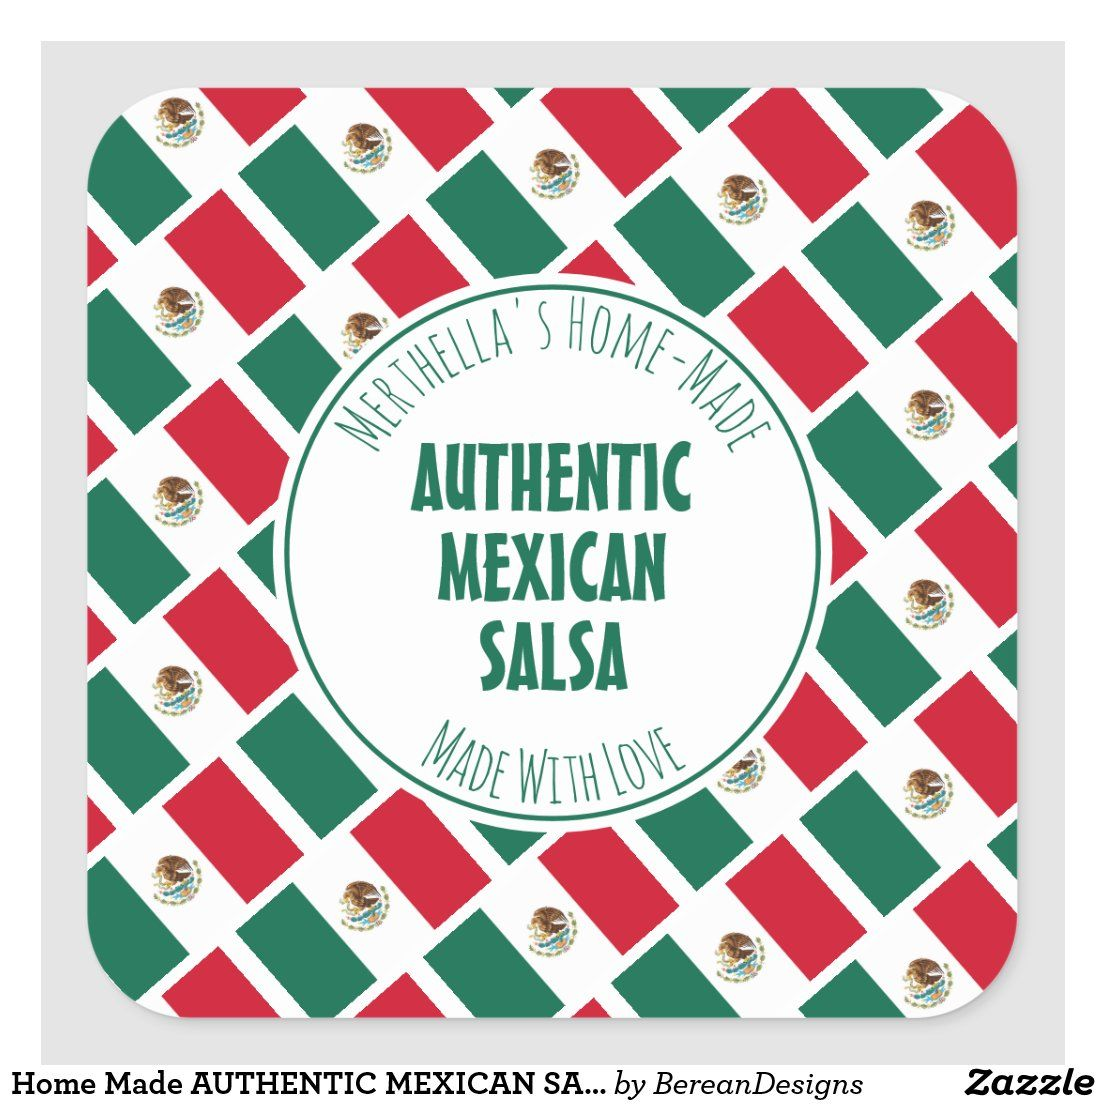 Home Made AUTHENTIC MEXICAN SALSA Square Sticker | Zazzle.com